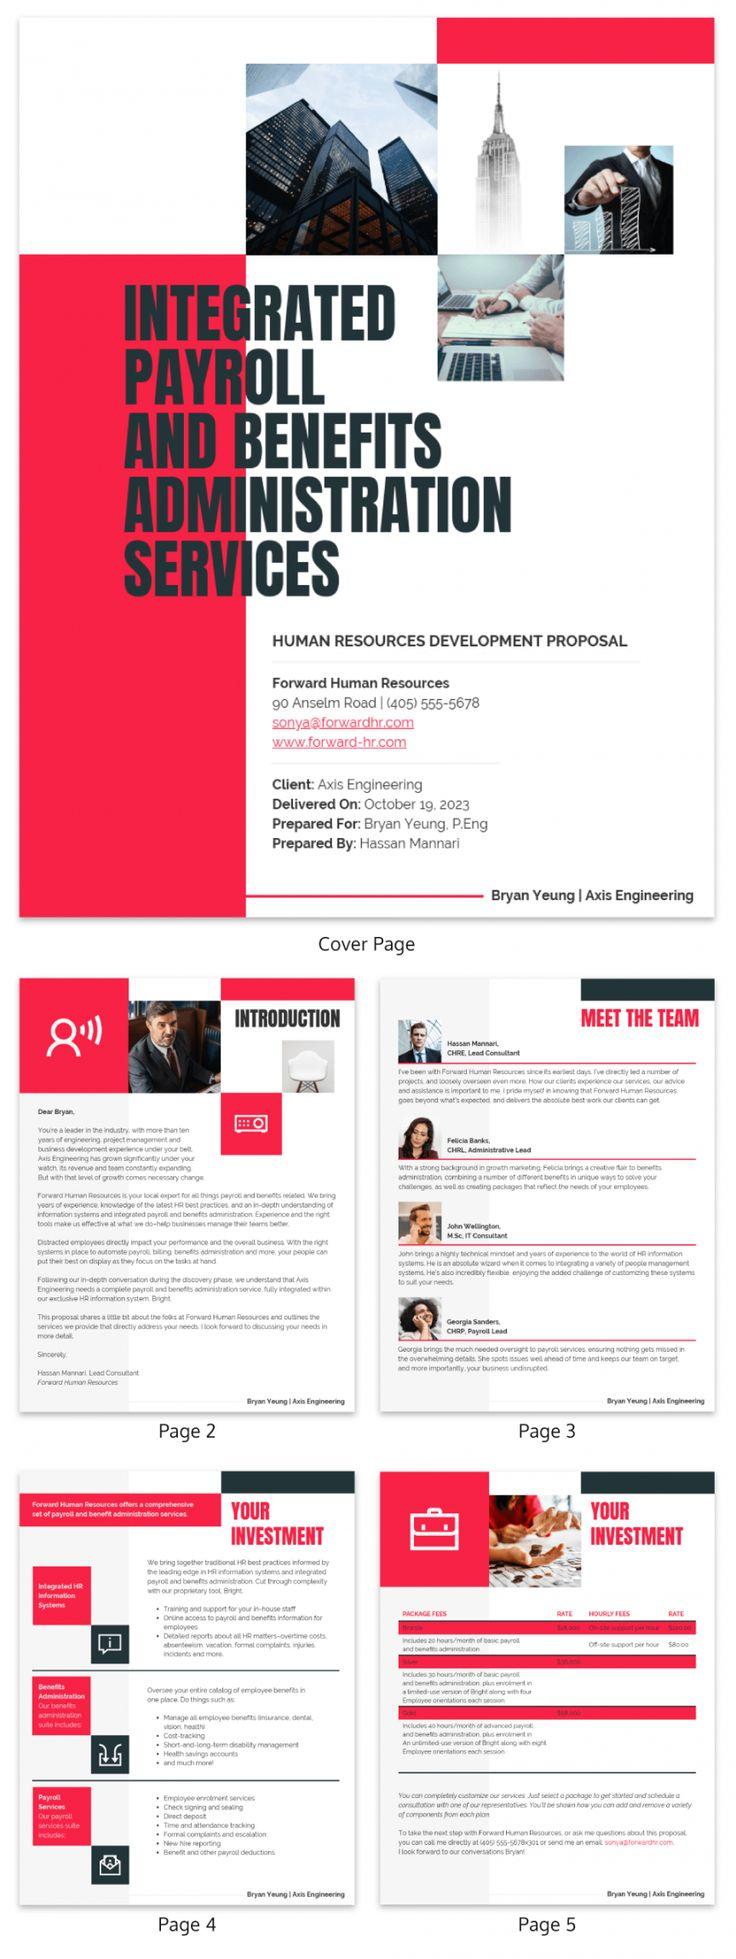 Get Our Example Of Human Resources Consulting Proposal Template For Free Proposal Templates Business Proposal Template Writing A Business Proposal Human resources consulting proposal template